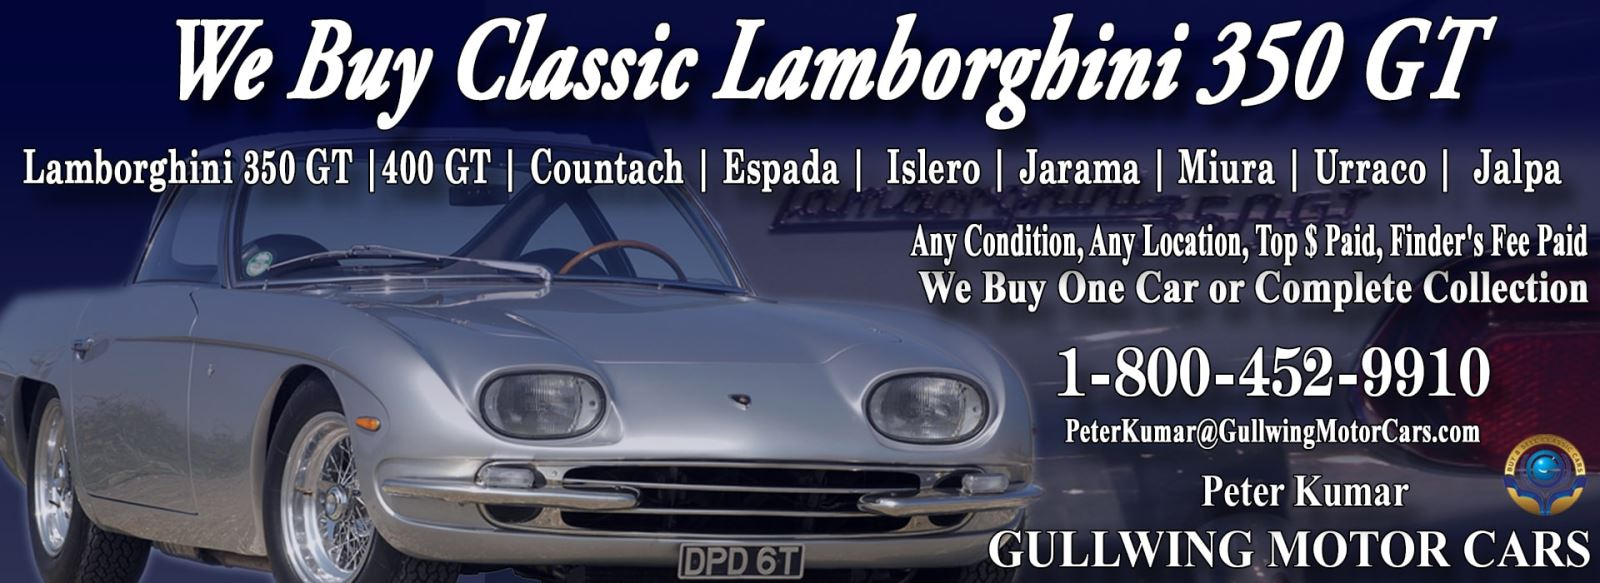 Classic Lamborghini 350GT for sale, we buy vintage Lamborghini 350 GT. Call Peter Kumar. Gullwing Motor